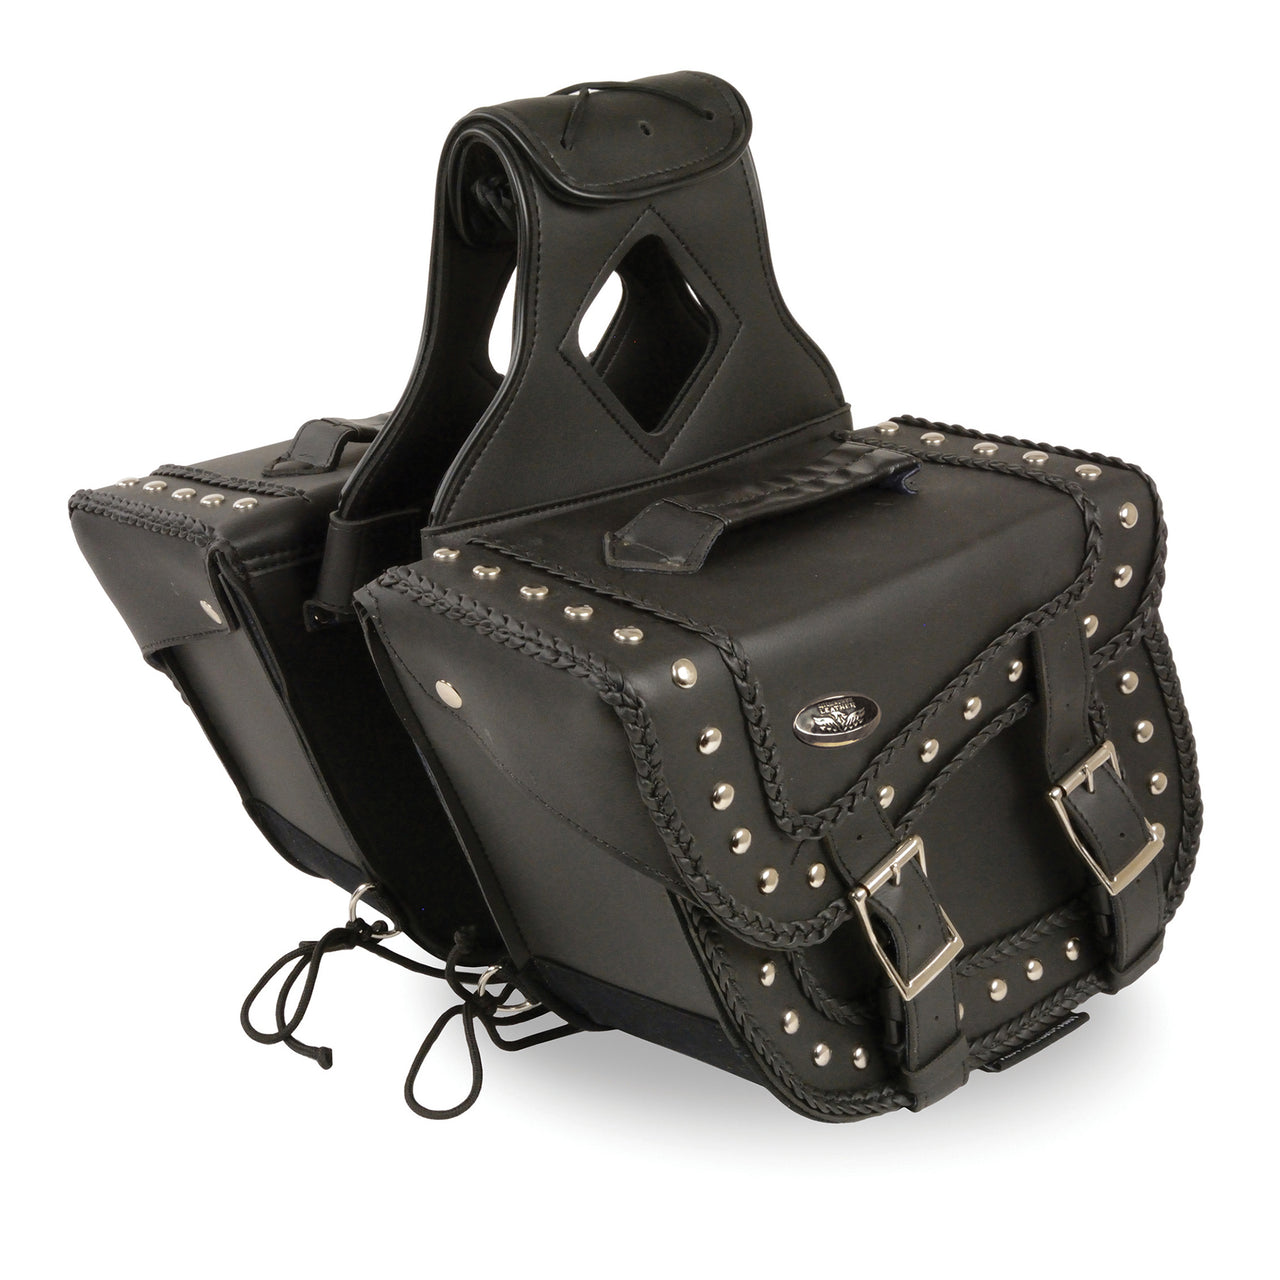 Medium Braided Zip-Off PVC Throw Over Saddle Bag w/ Studs (12X9X6X17.5) - HighwayLeather